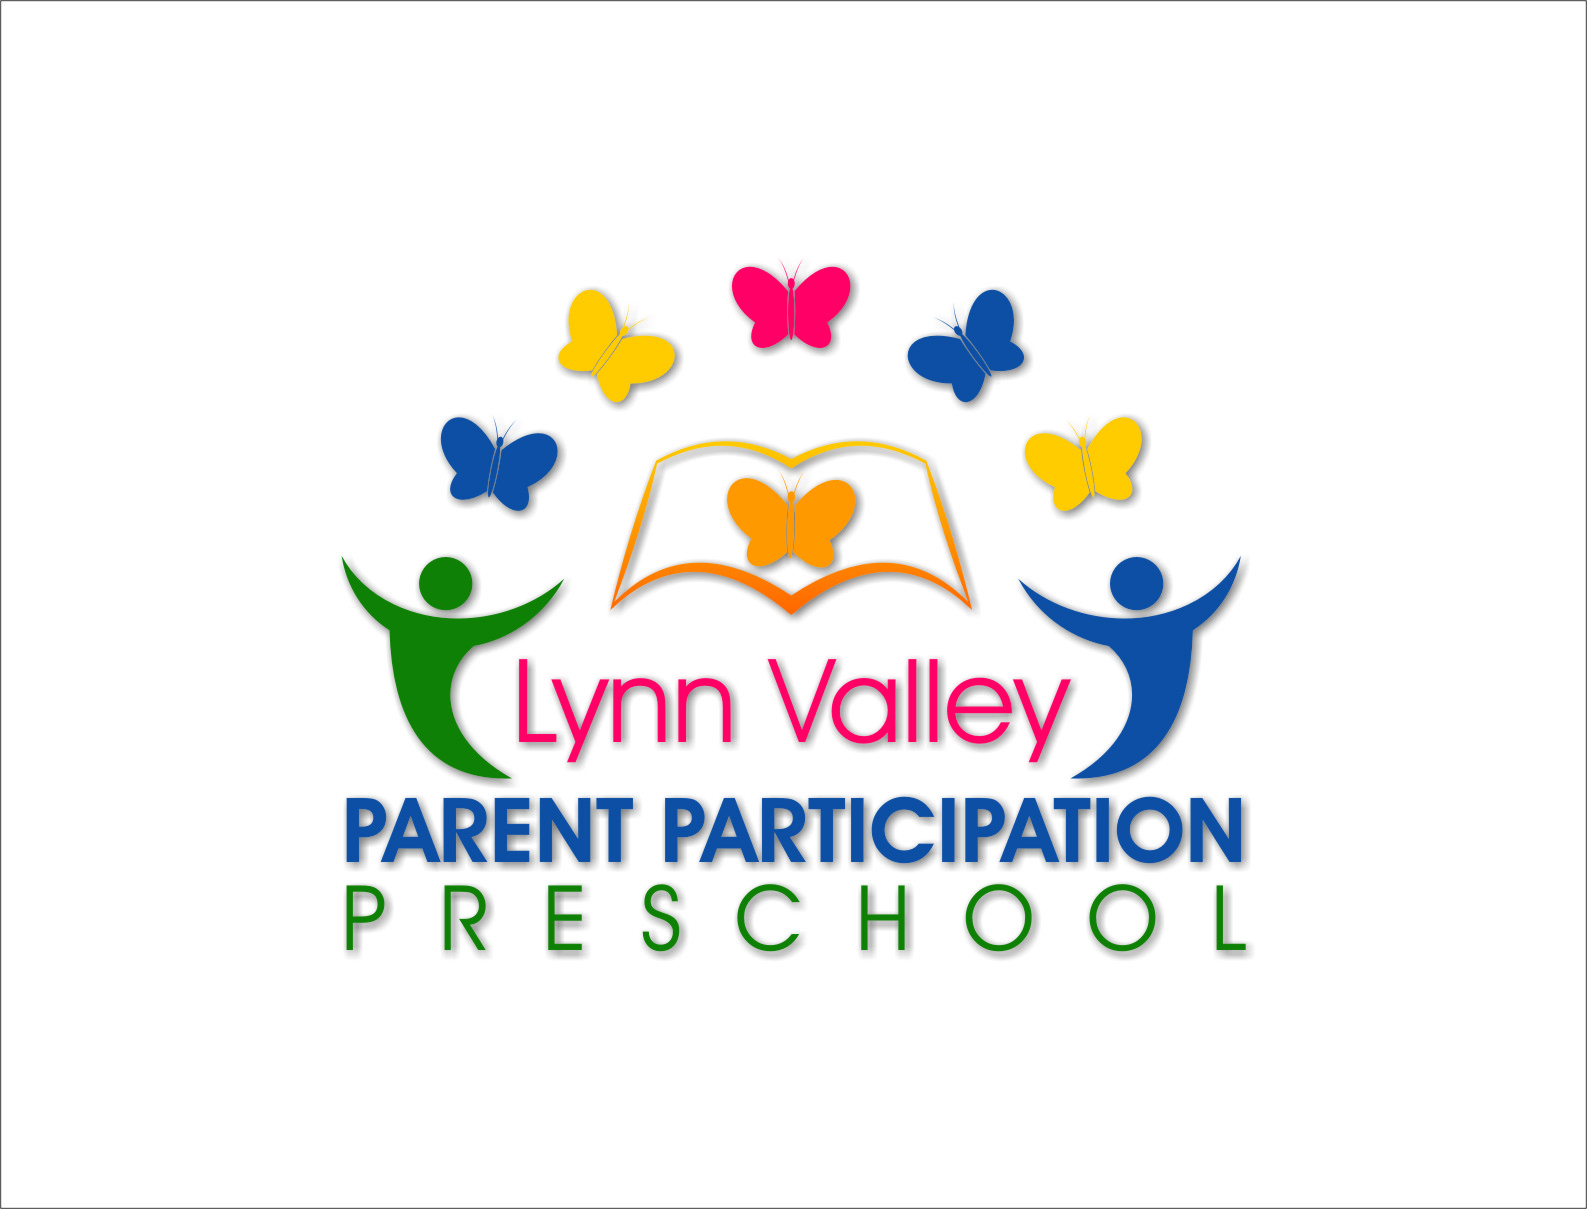 Logo Design by Ngepet_art - Entry No. 60 in the Logo Design Contest New Logo Design for Lynn Valley Parent Participation Preschool.